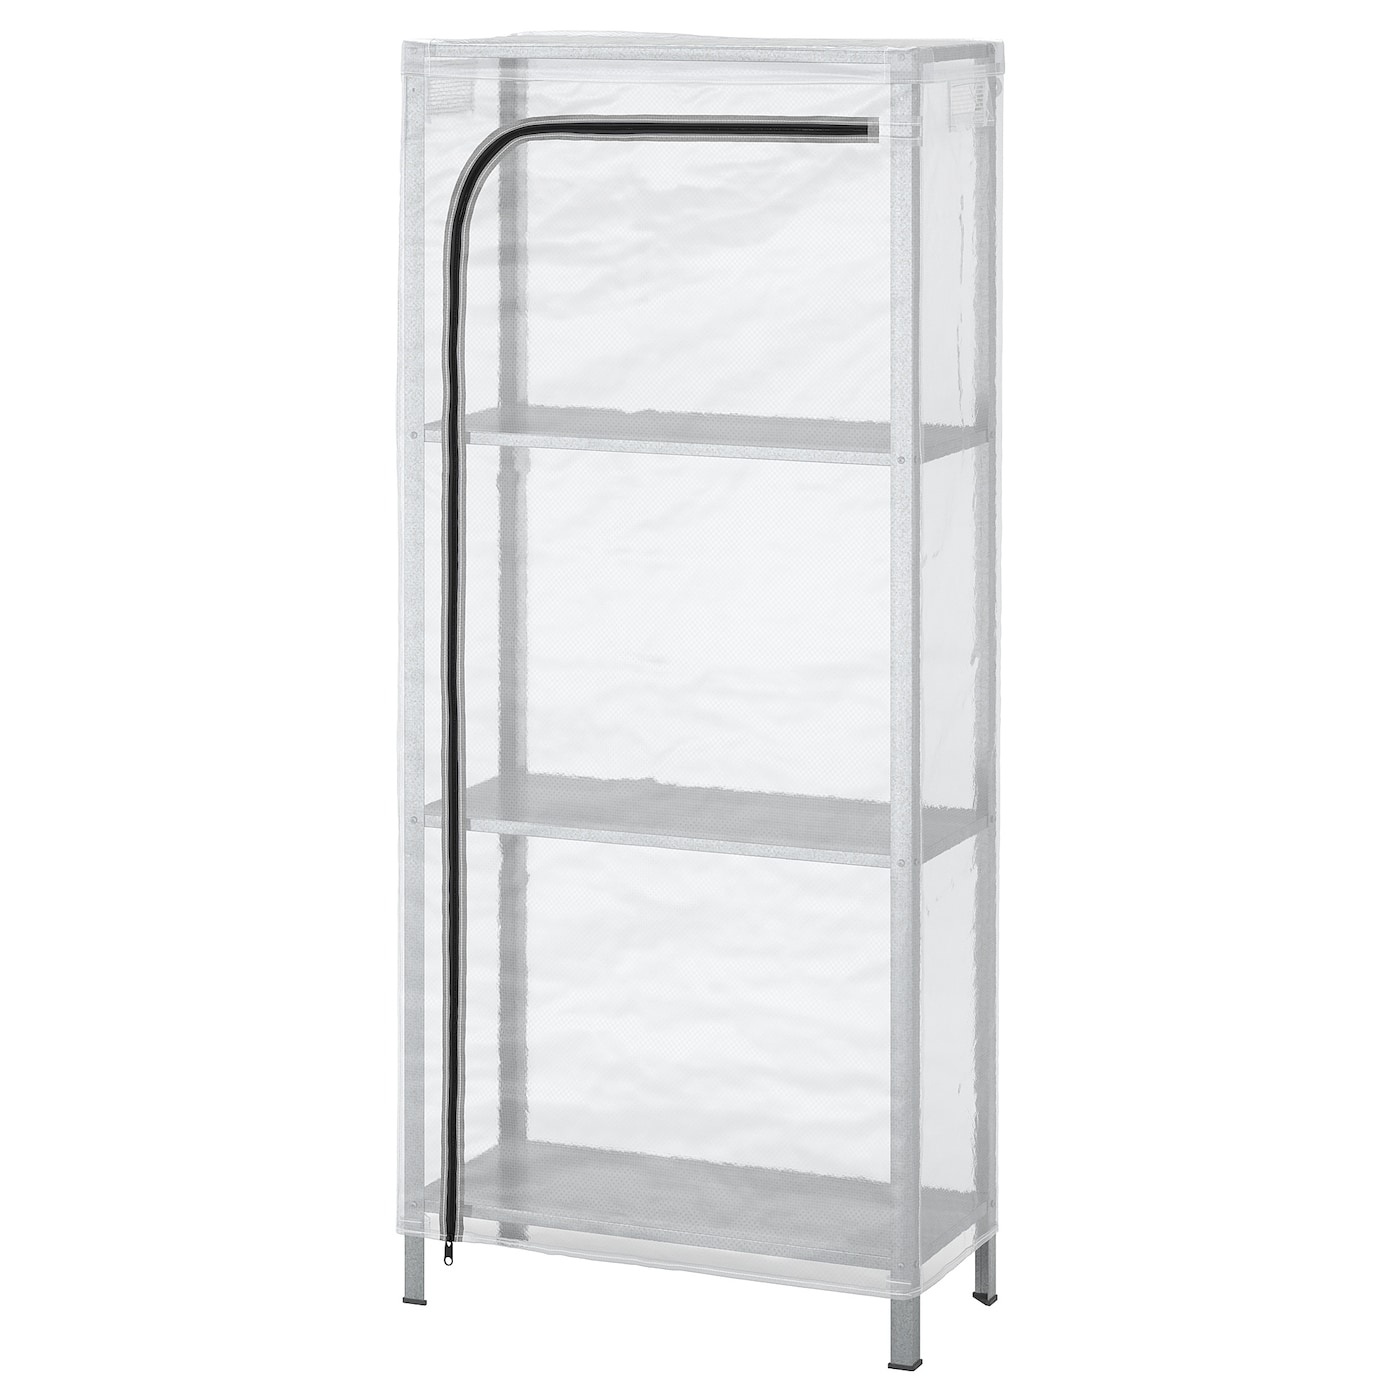 Ikea HYLLIS Shelf unit with cover, transparent, 23 5/8x10 5/8x55 1/8